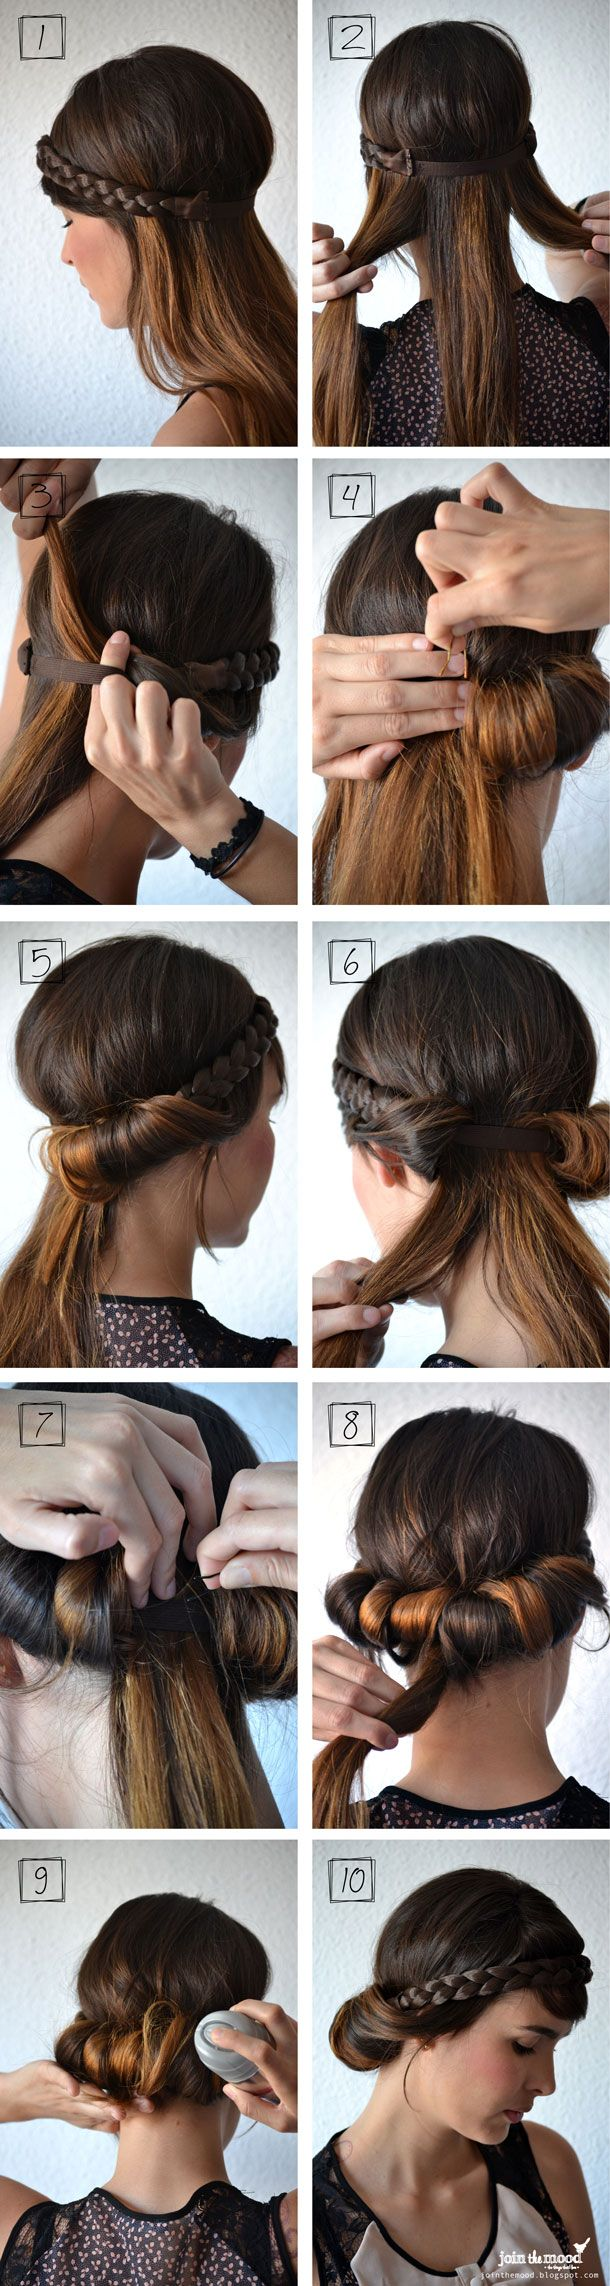 Hairstyles to try useful tutorials for long hair awesome hair